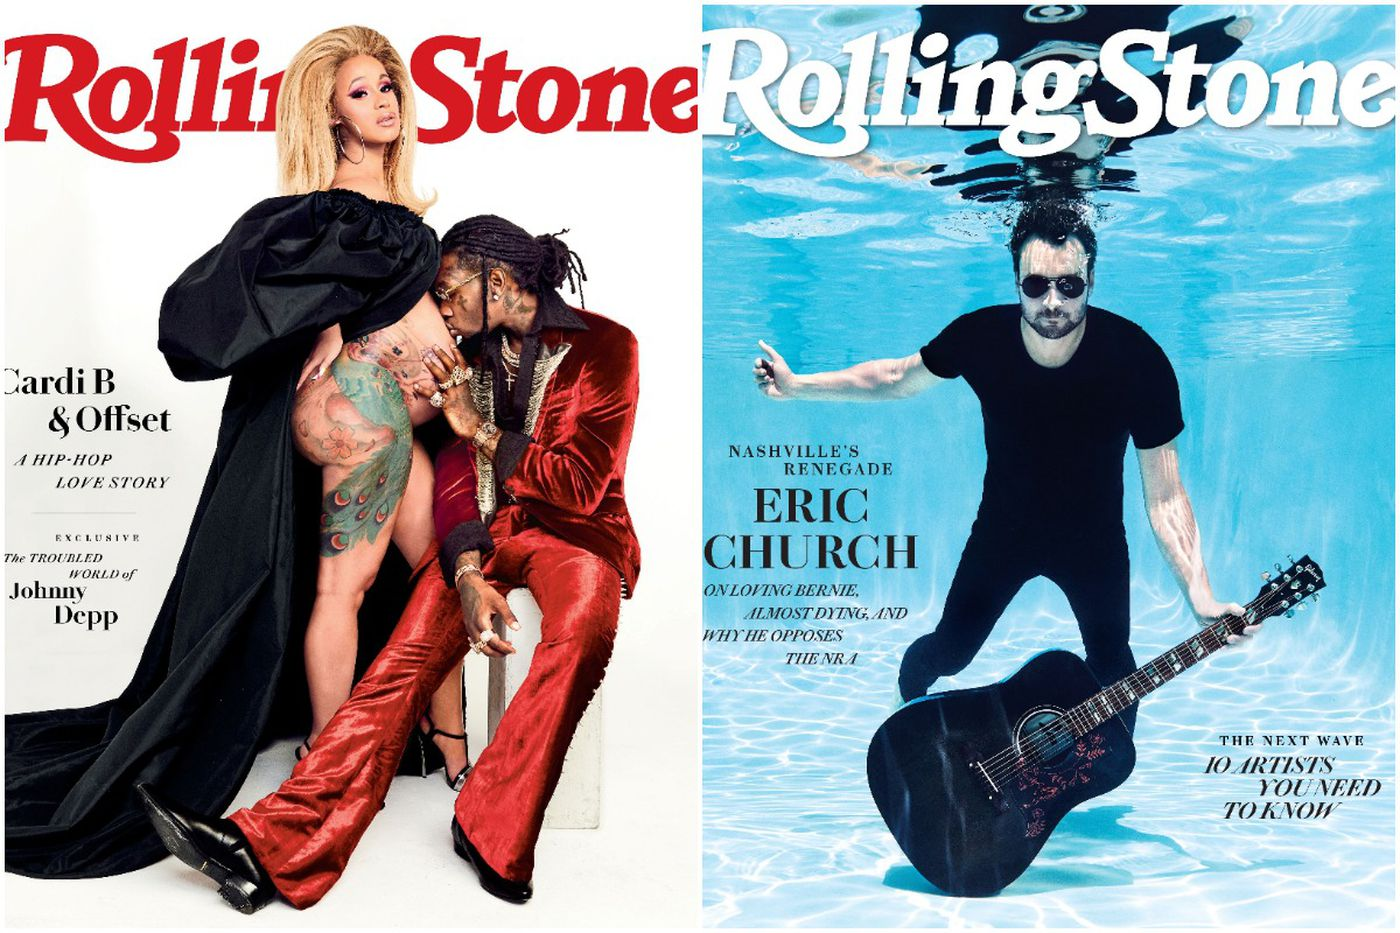 Can Rolling Stone ever be cool again?